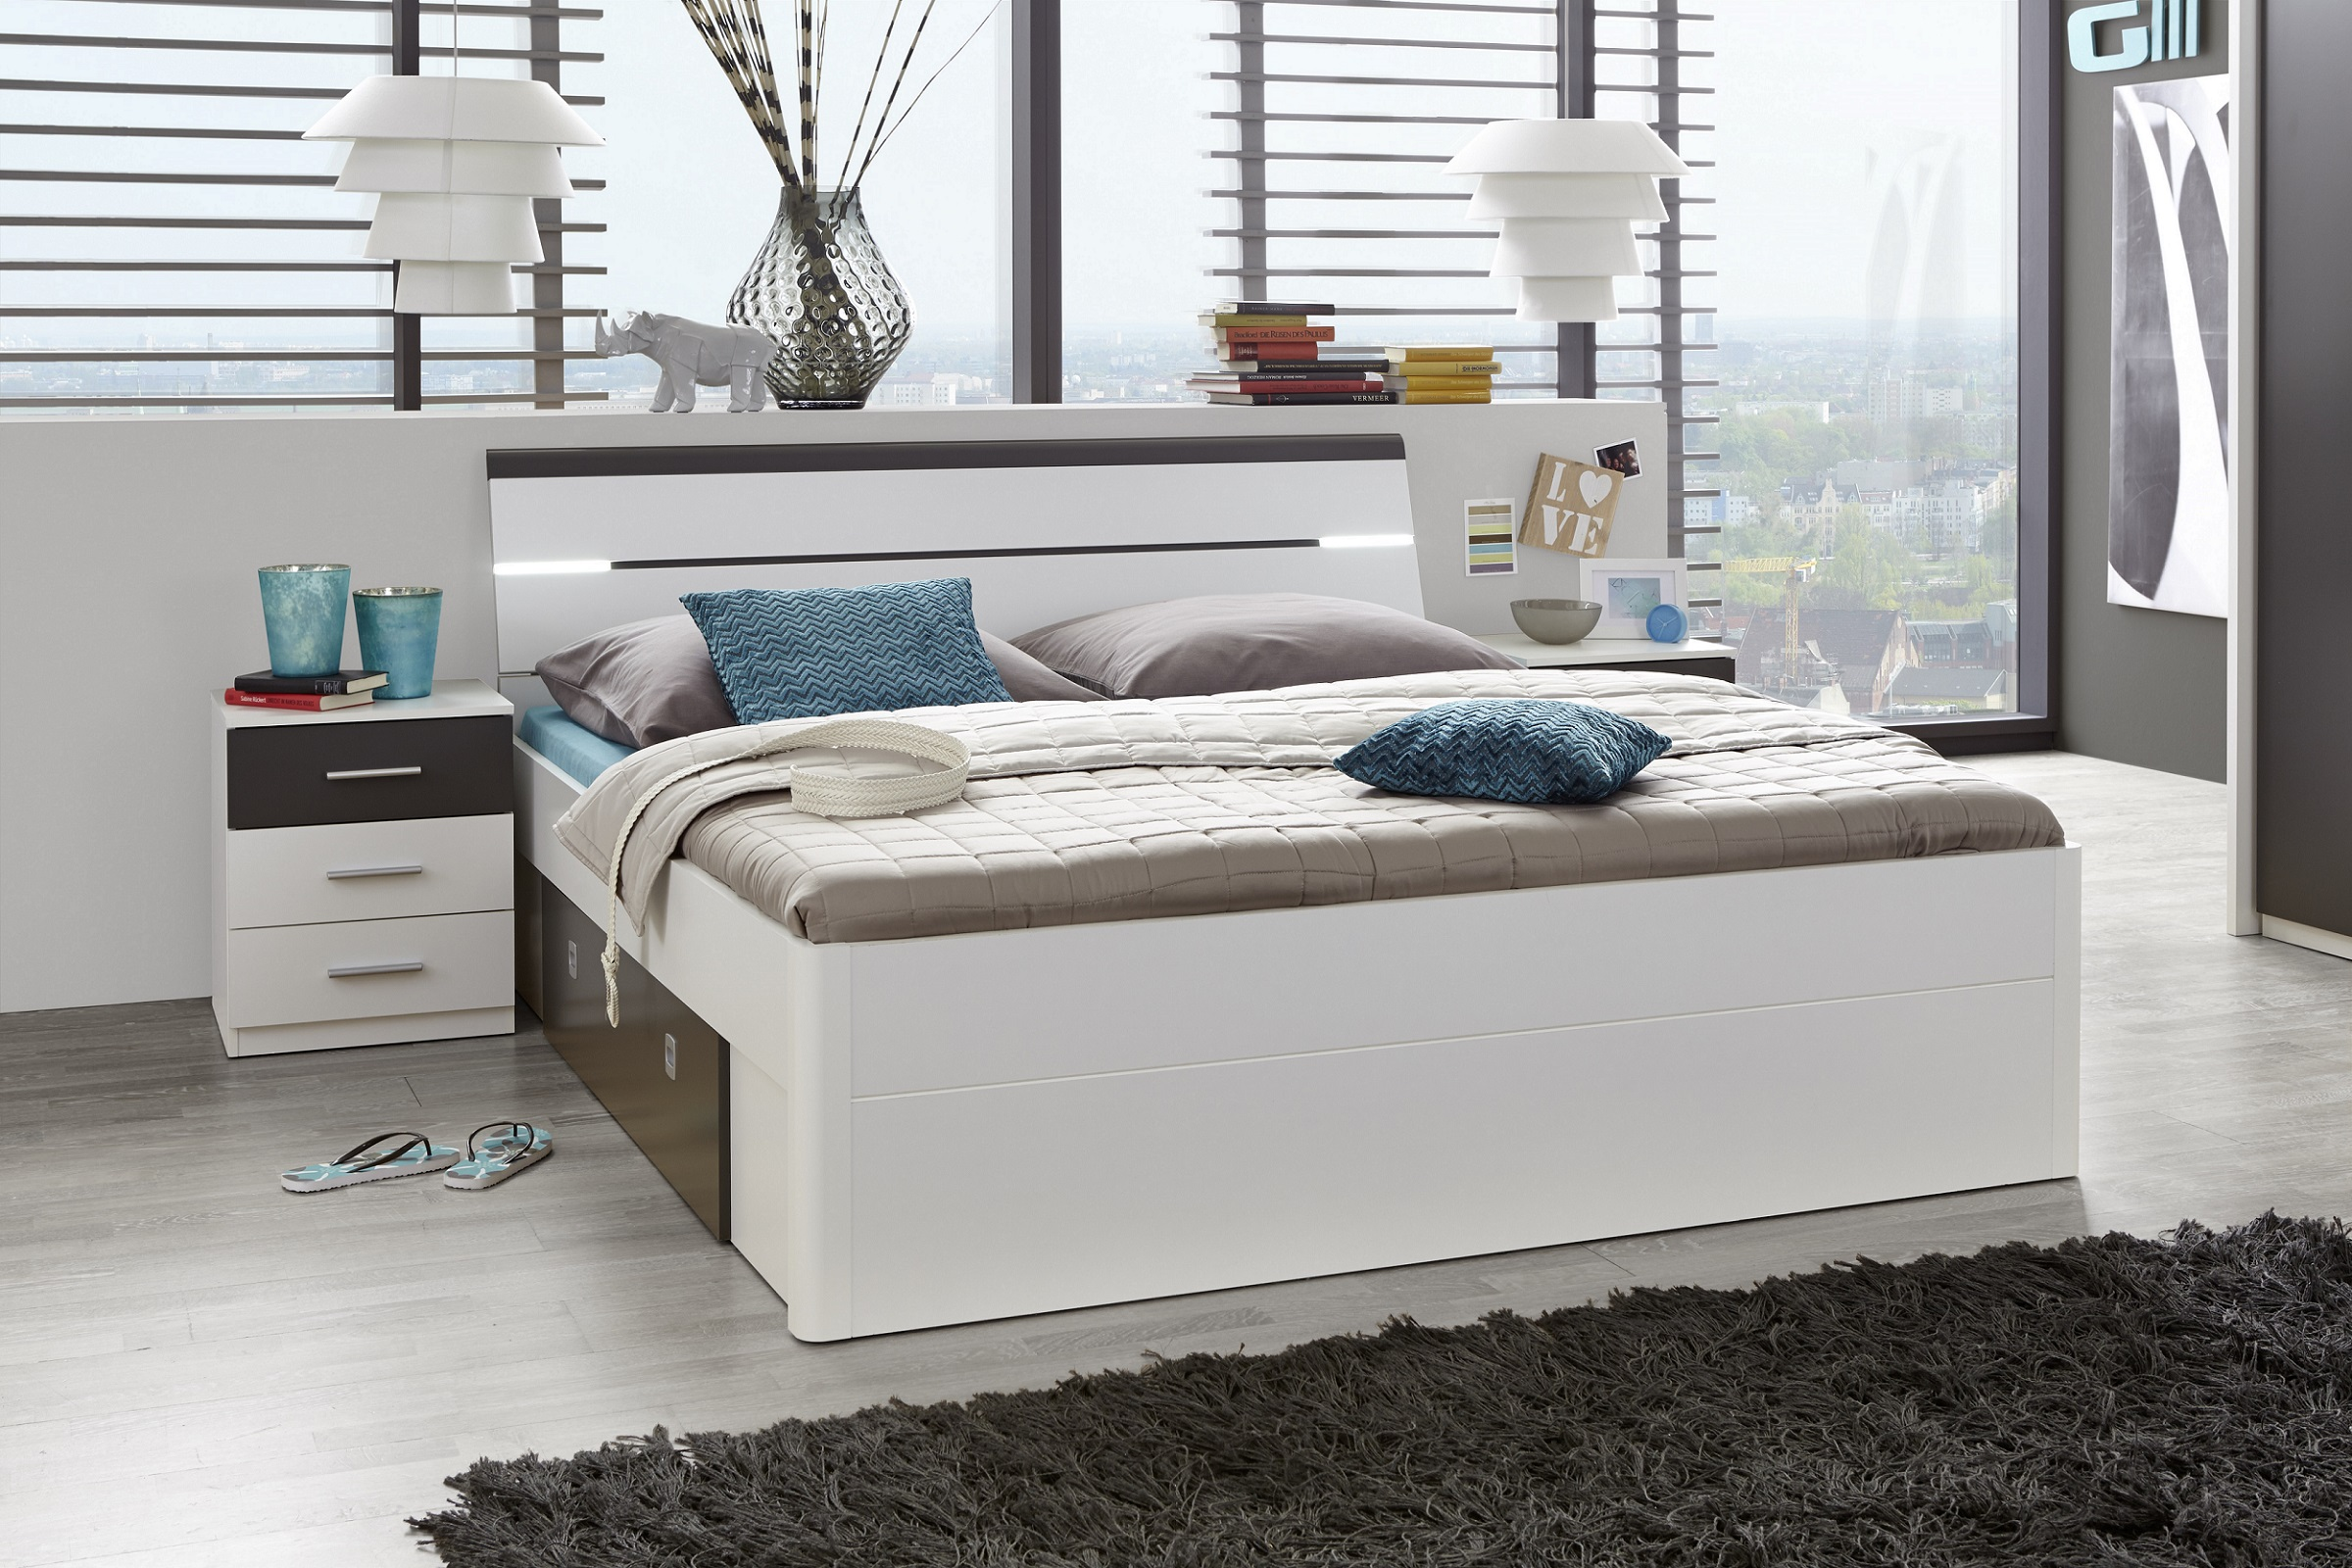 doppelbett mit nachtkommoden bett 180 x 200 cm ehebett wei grau nachtkommoden 5901738007239 ebay. Black Bedroom Furniture Sets. Home Design Ideas